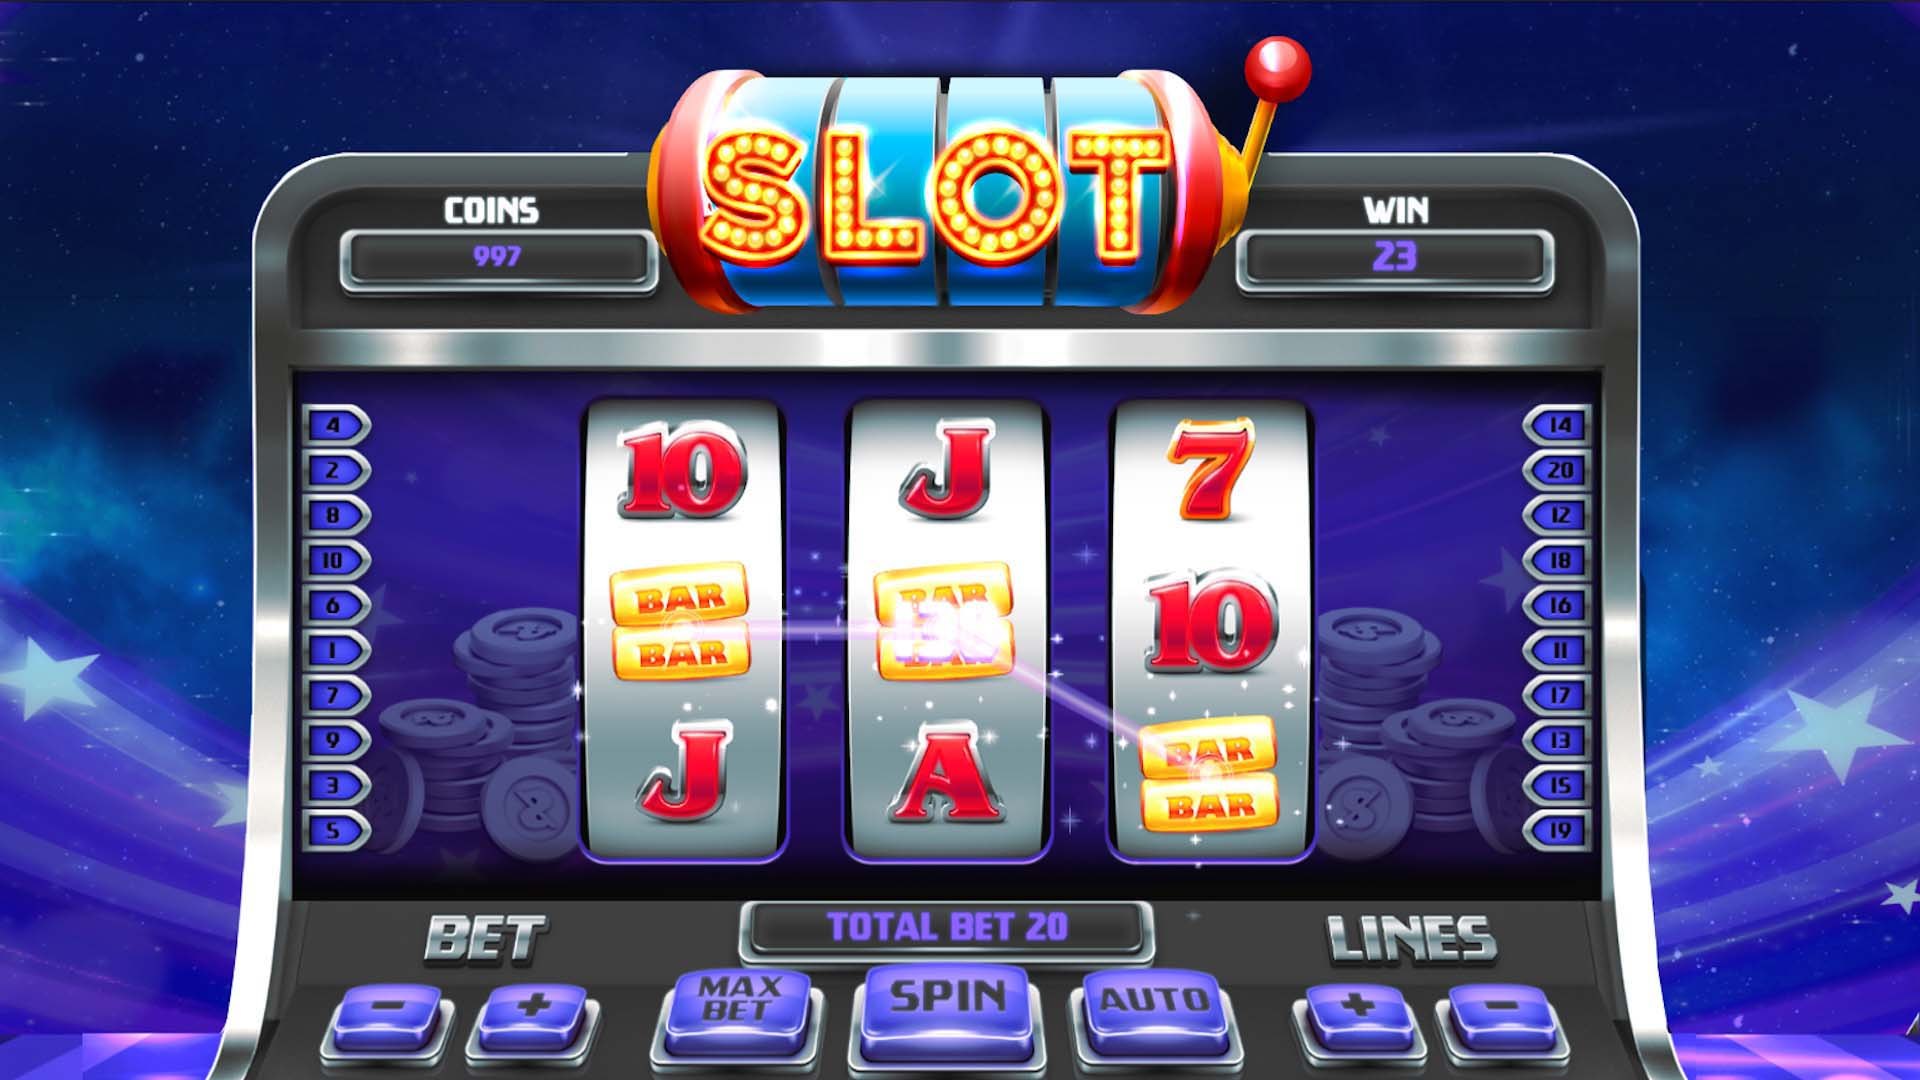 Official Agent of Sbobet Online Gambling Site in Indonesia